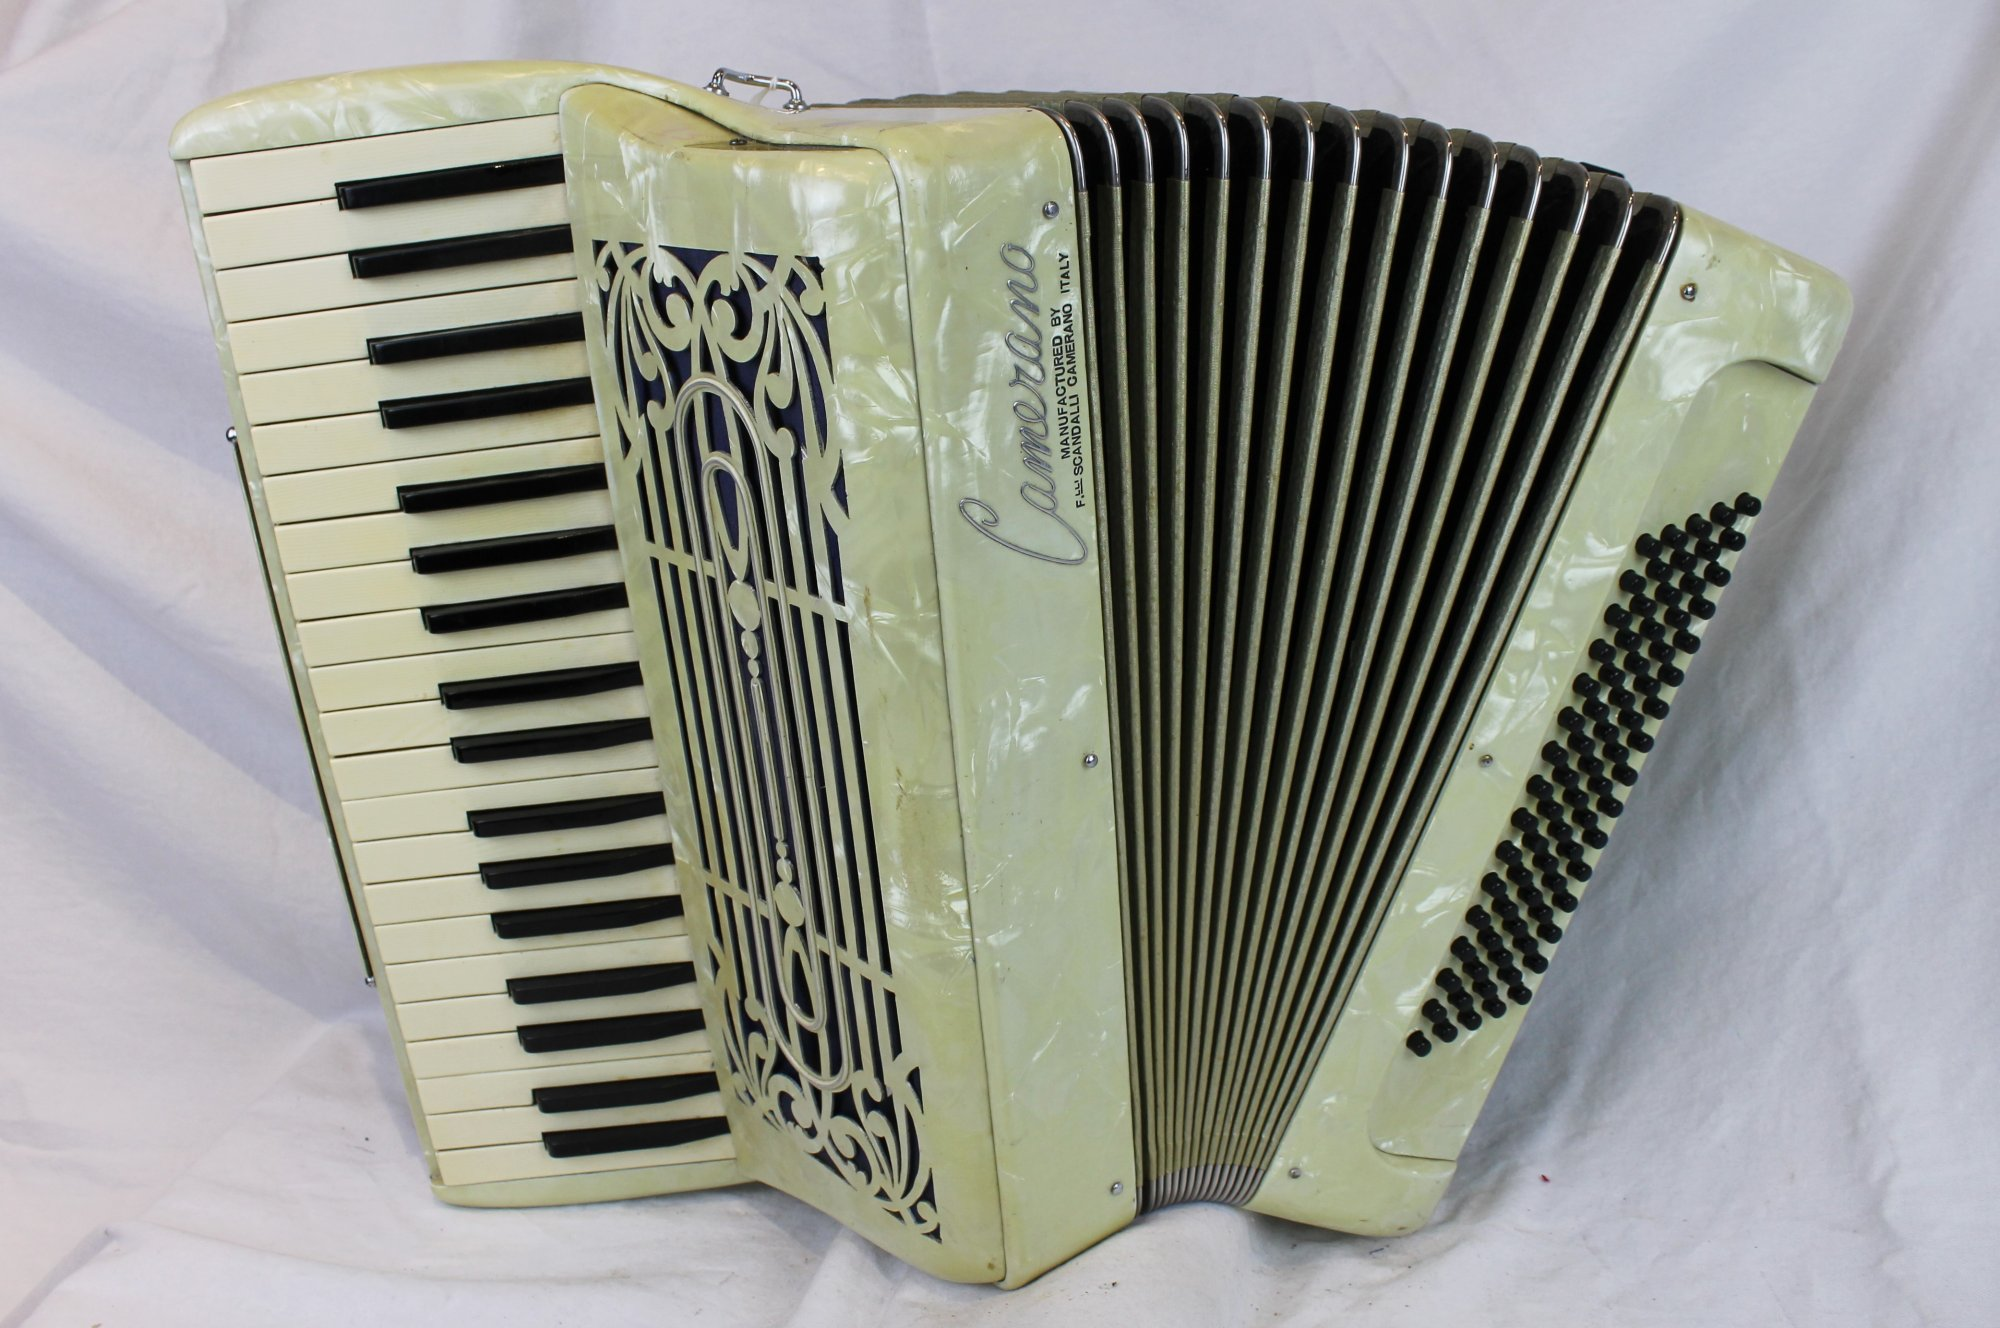 6069 - Cream Camerano Piano Accordion LMM 39 80